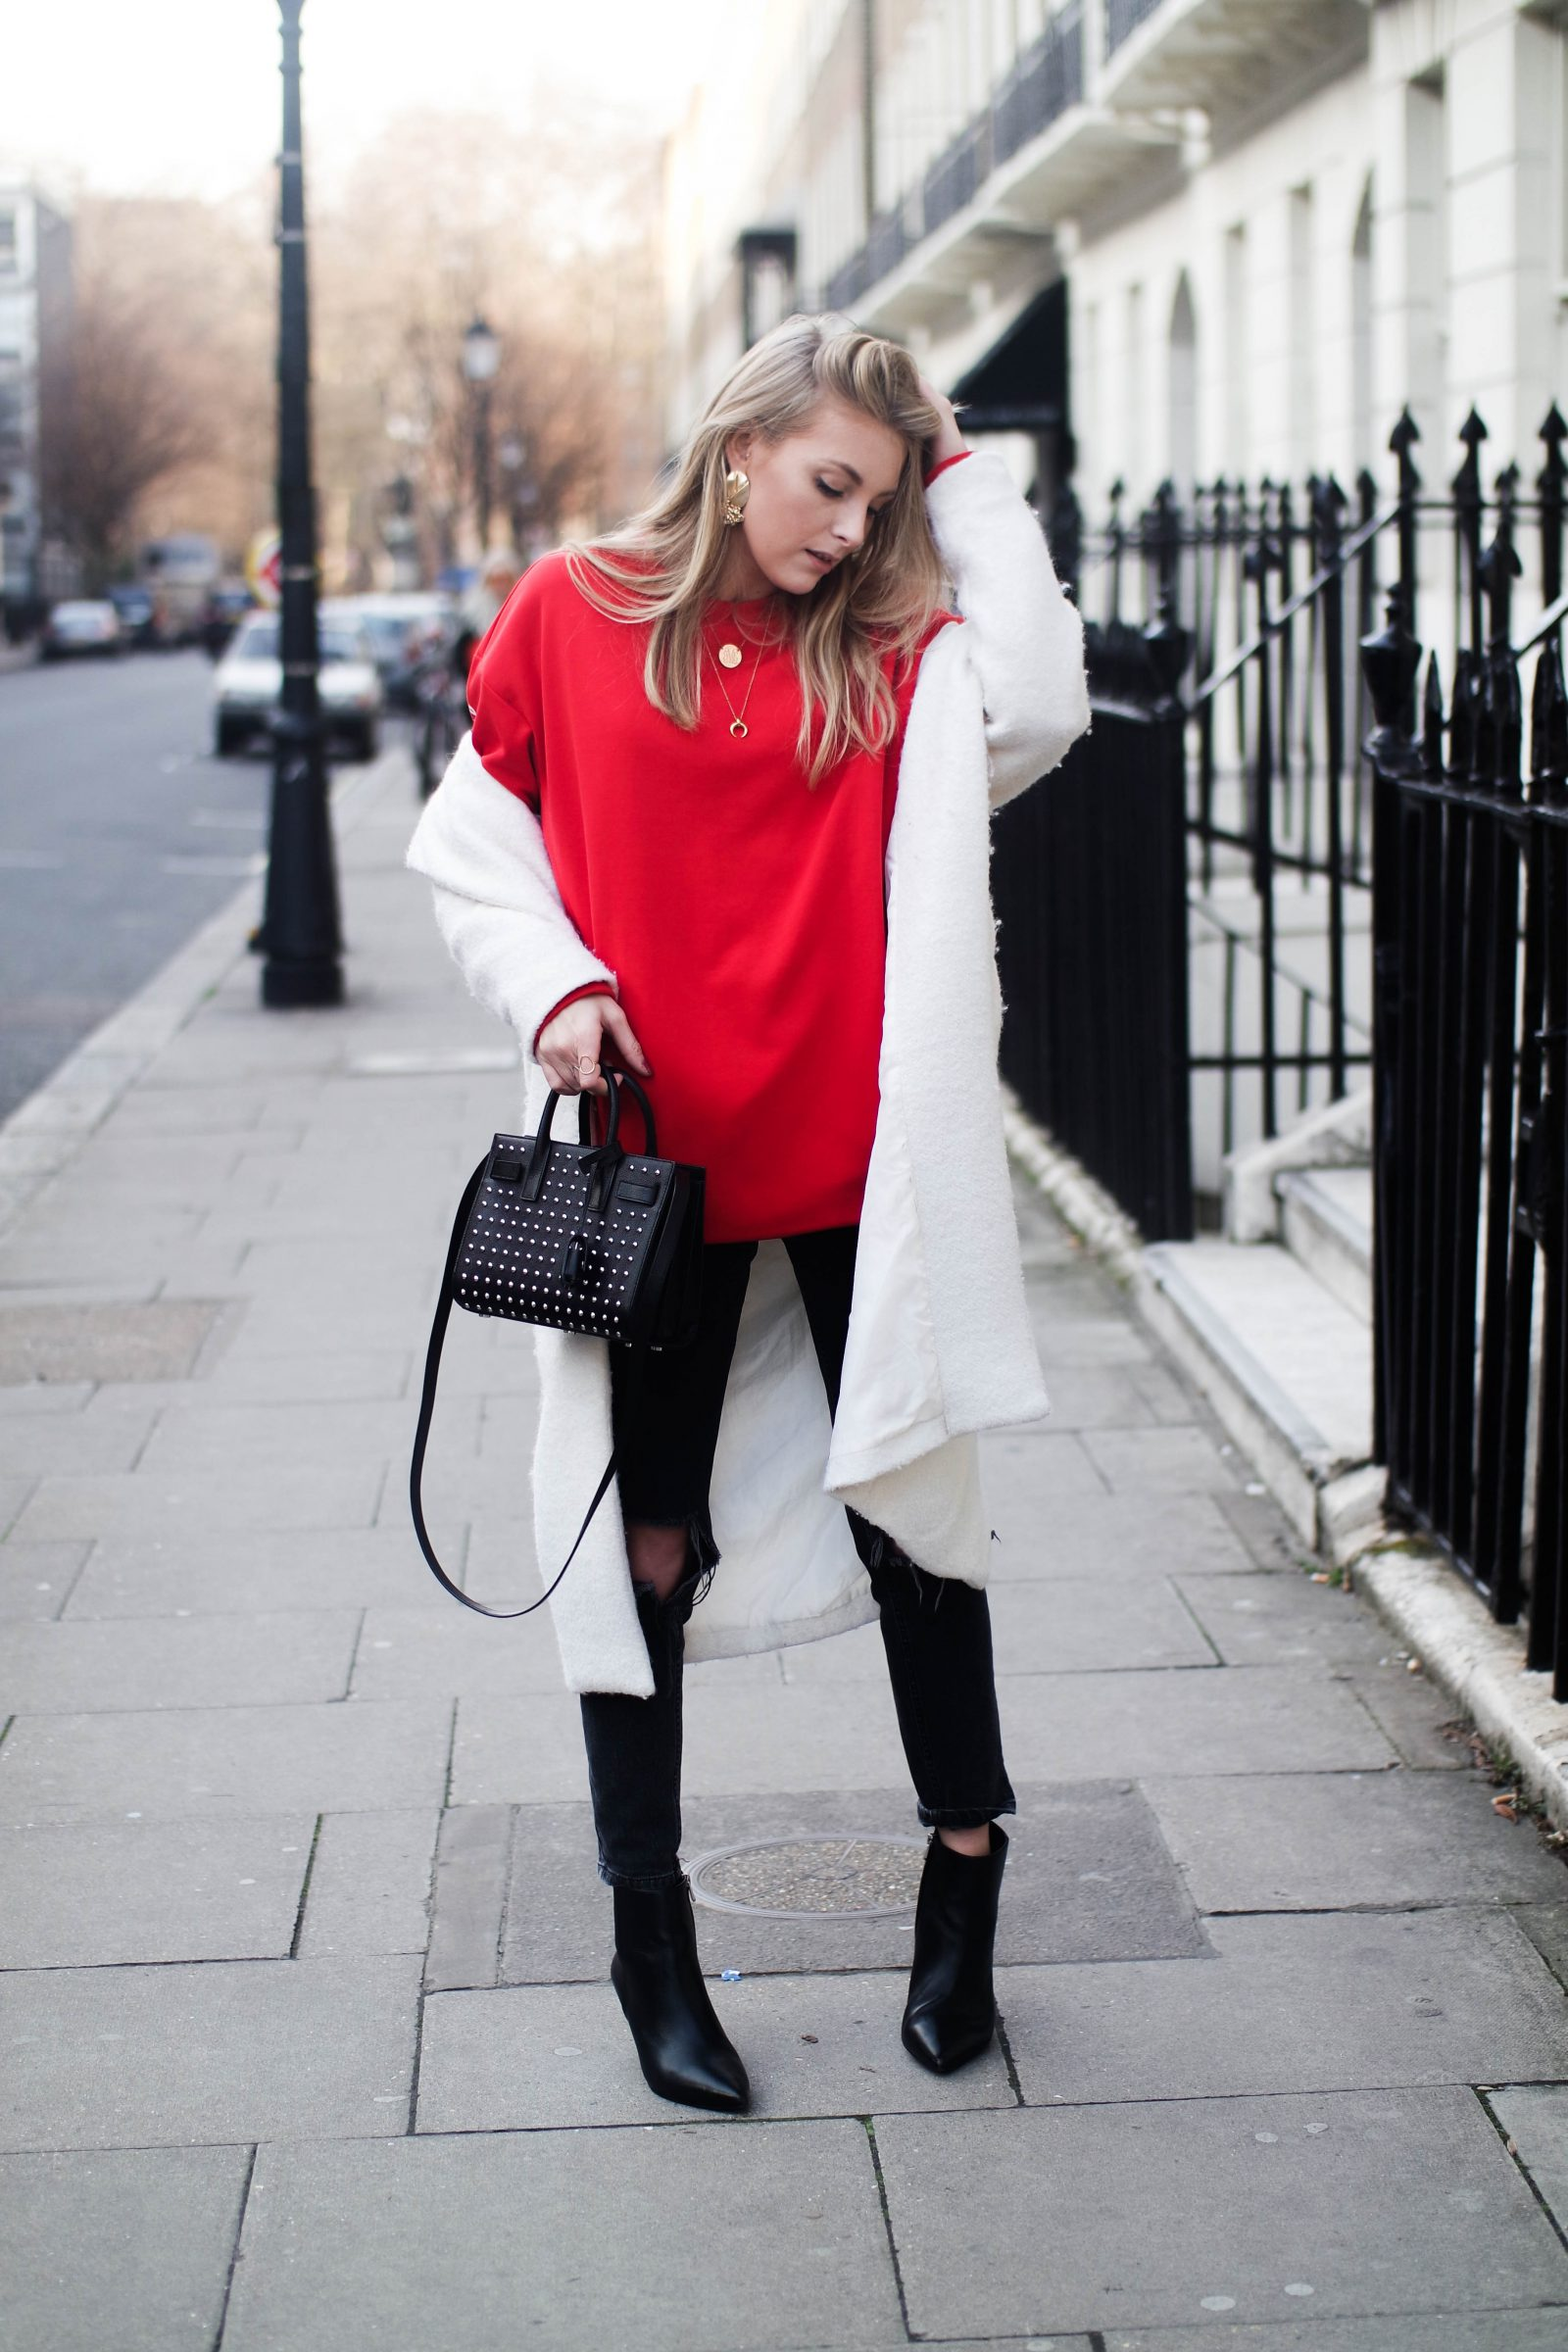 LFW DAY 2 - Red Alert - Street Style